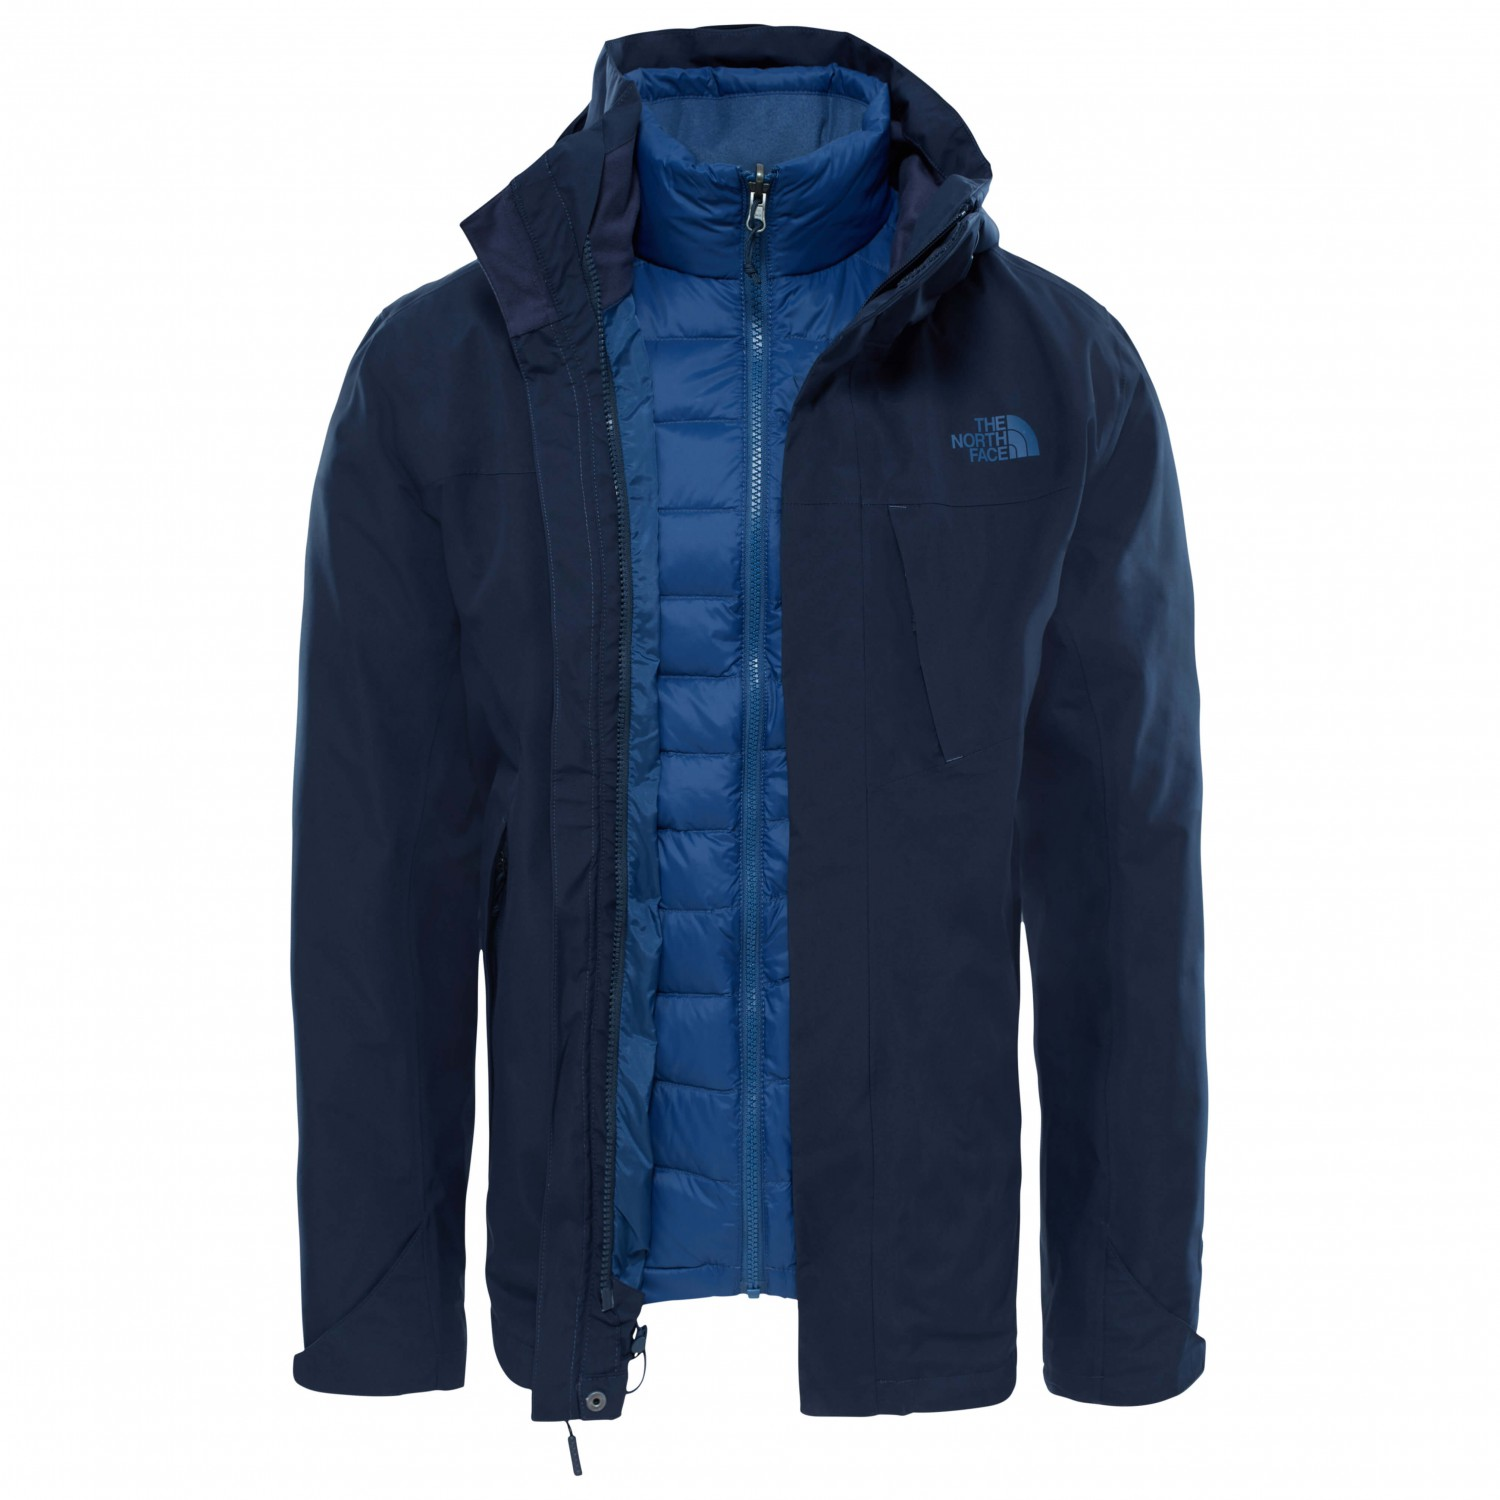 The North Face Mountain Light Triclimate Jacket 3 i 1